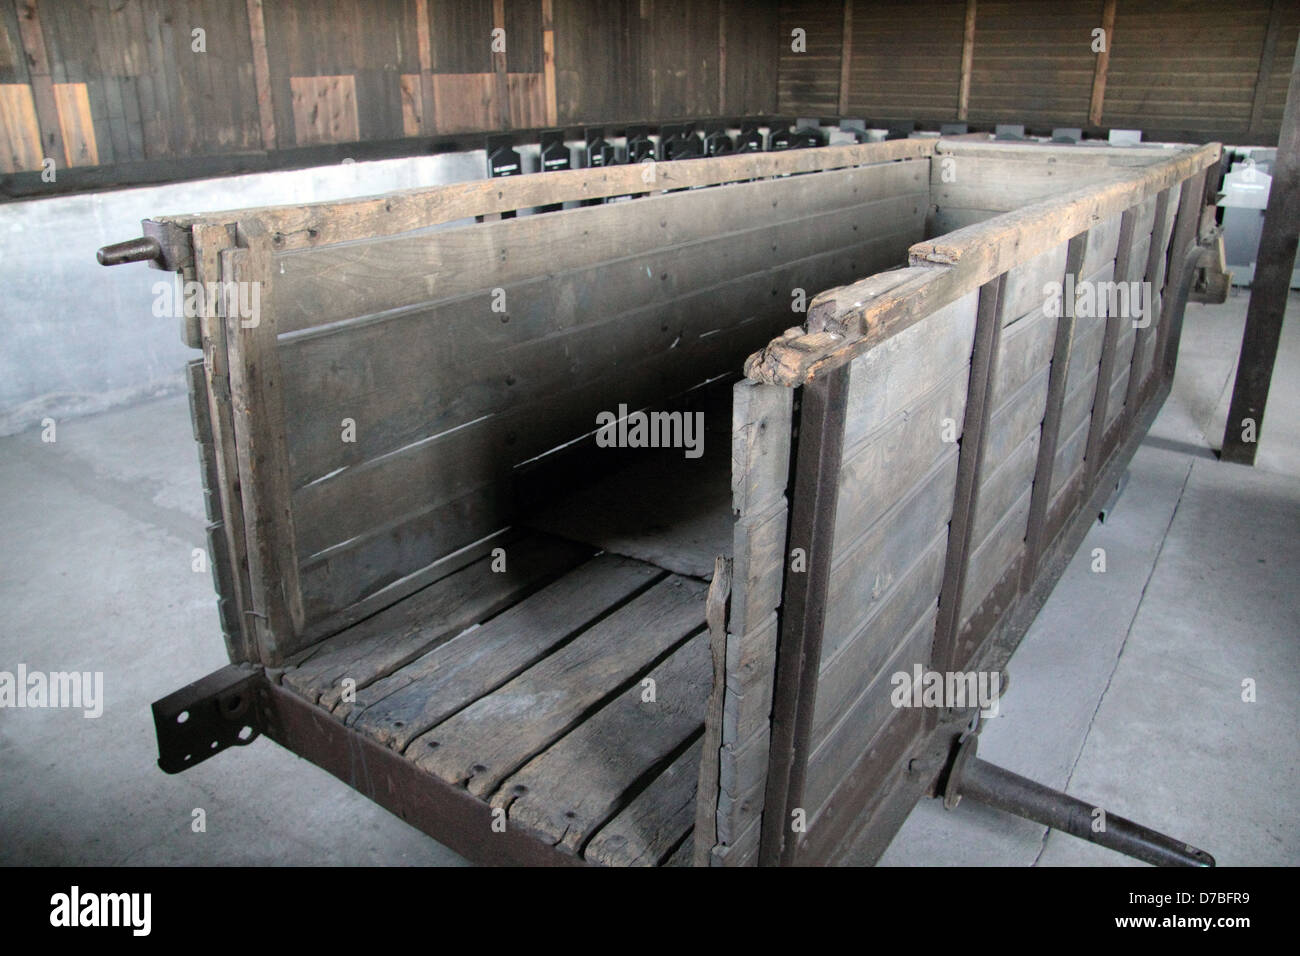 Cart which was used to carry bodies from the gas chambers to the crematorium at Majdanek death camp, Poland - Stock Image